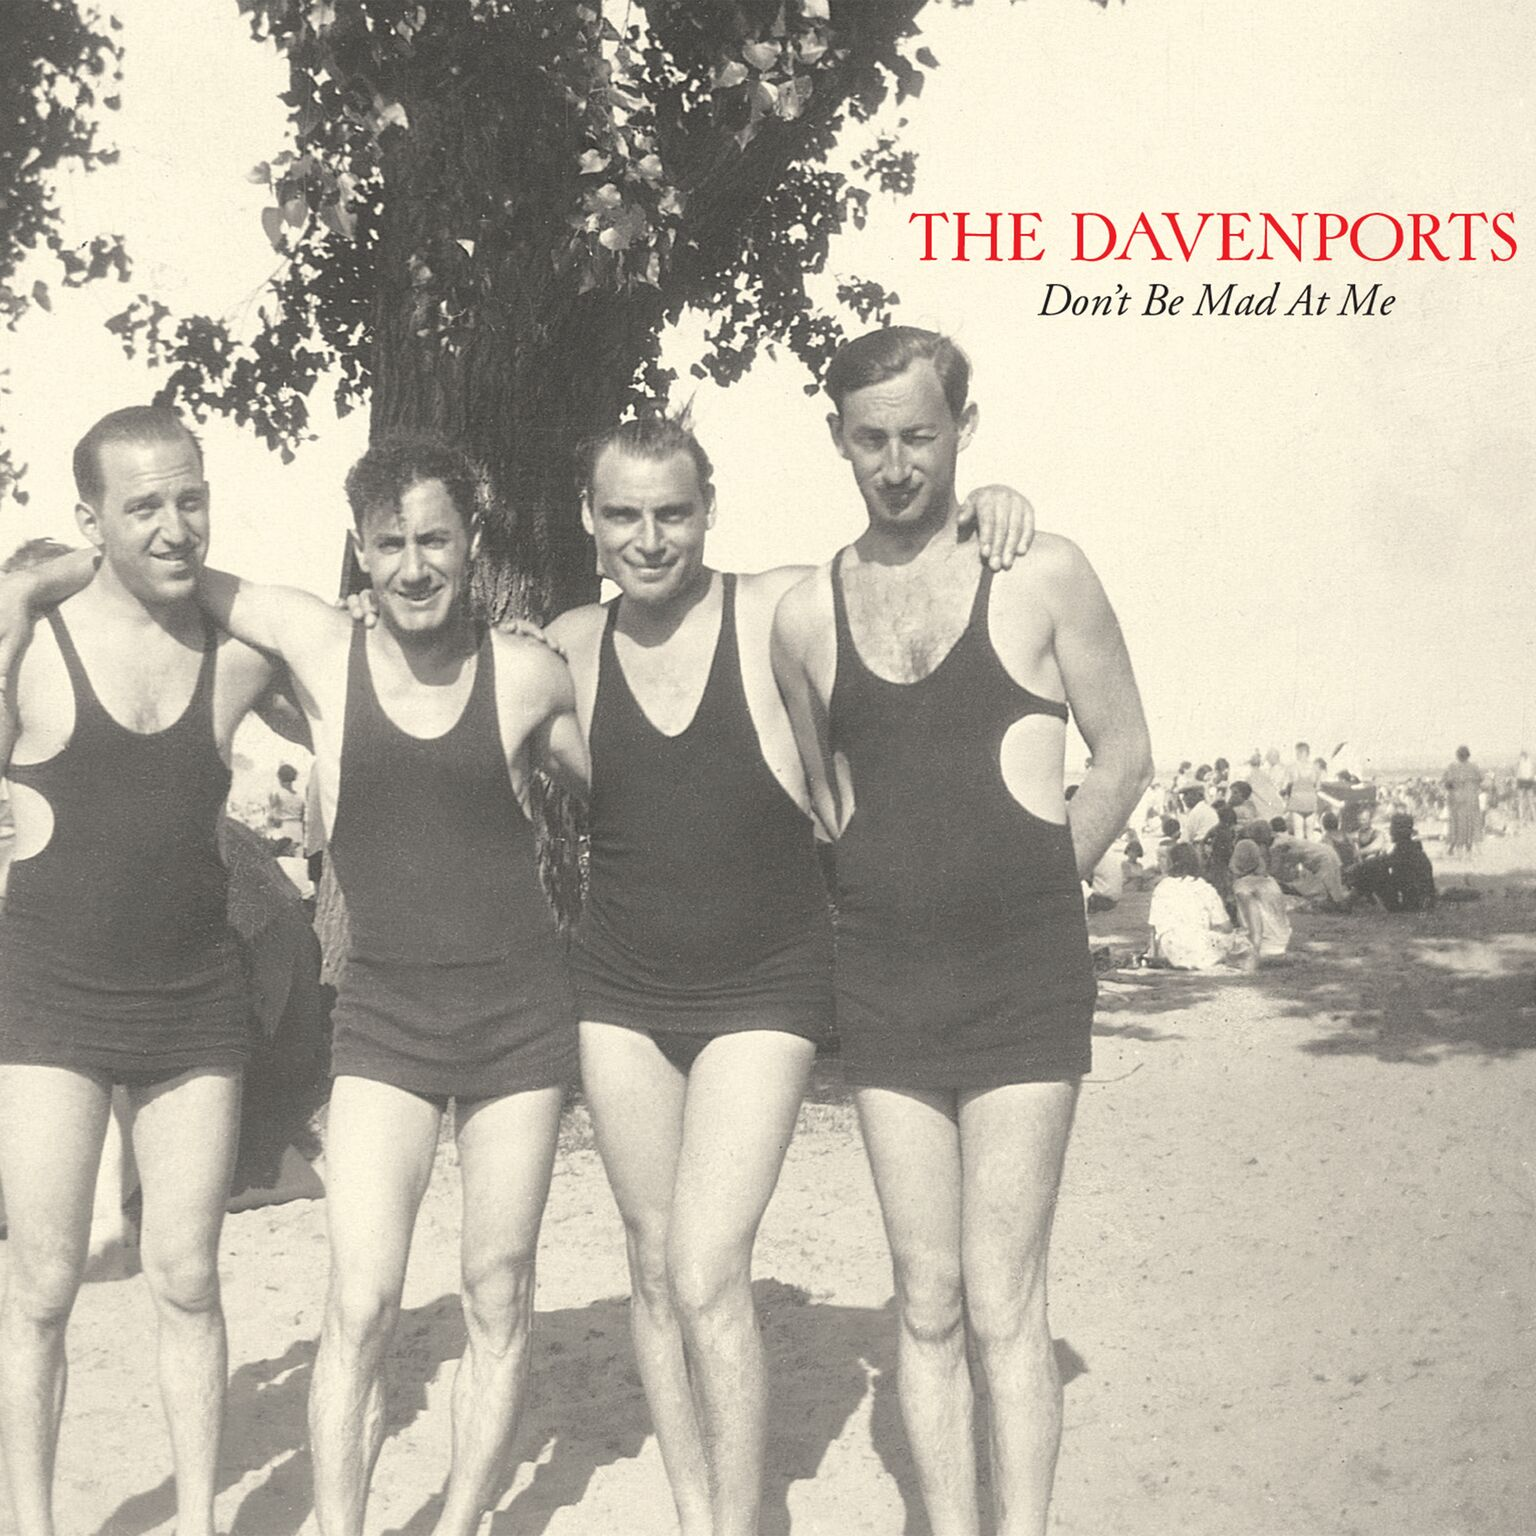 DAVENPORTS-CD-COVERART_preview.jpeg